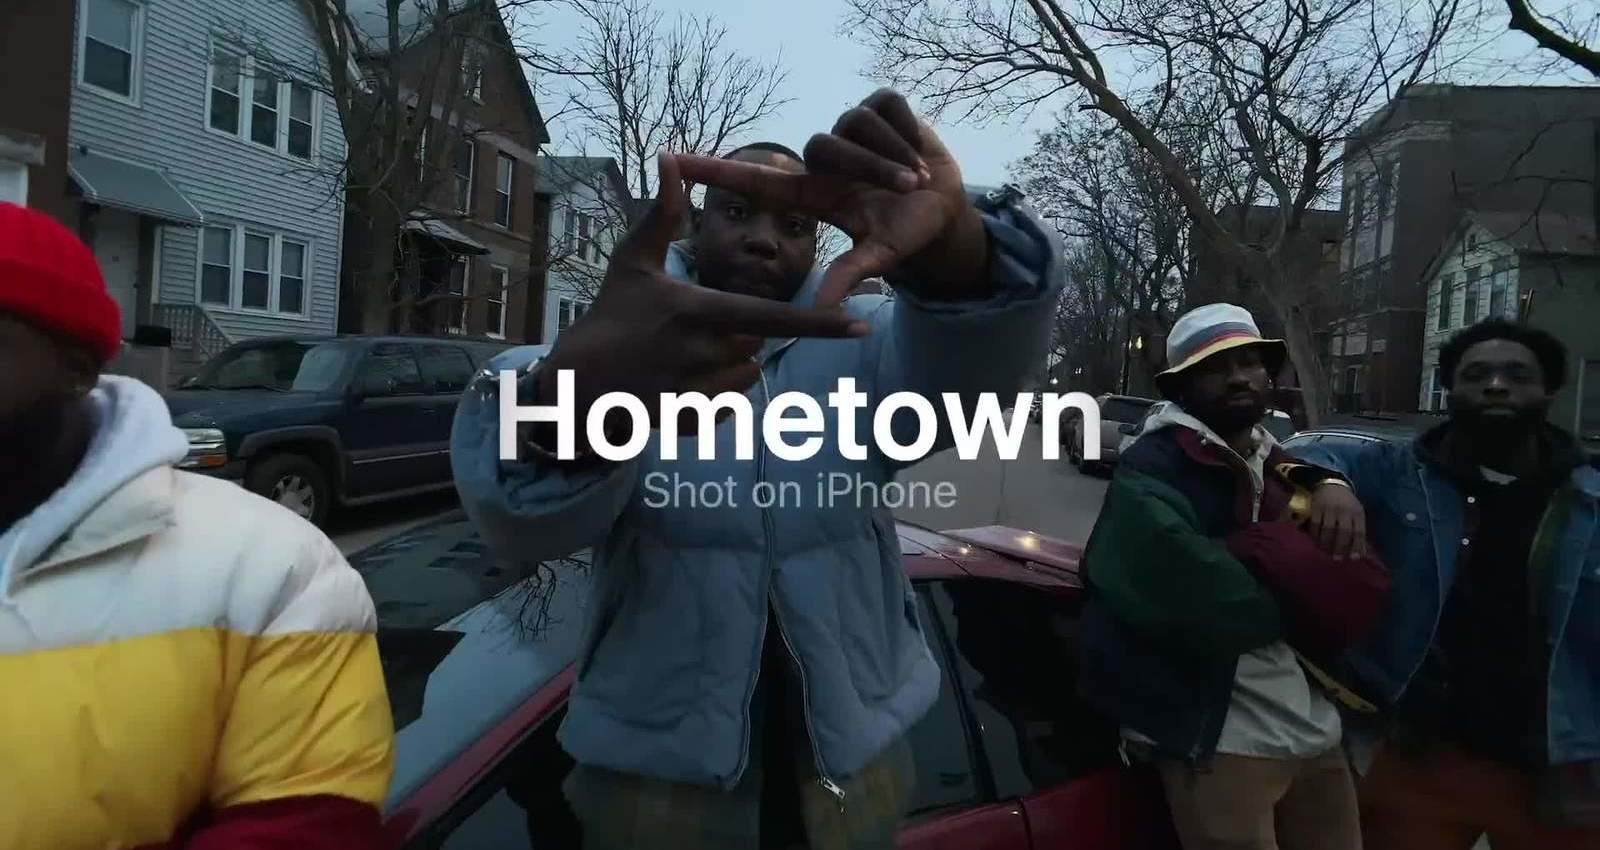 Hometown — Shot on iPhone by Phillip Youmans